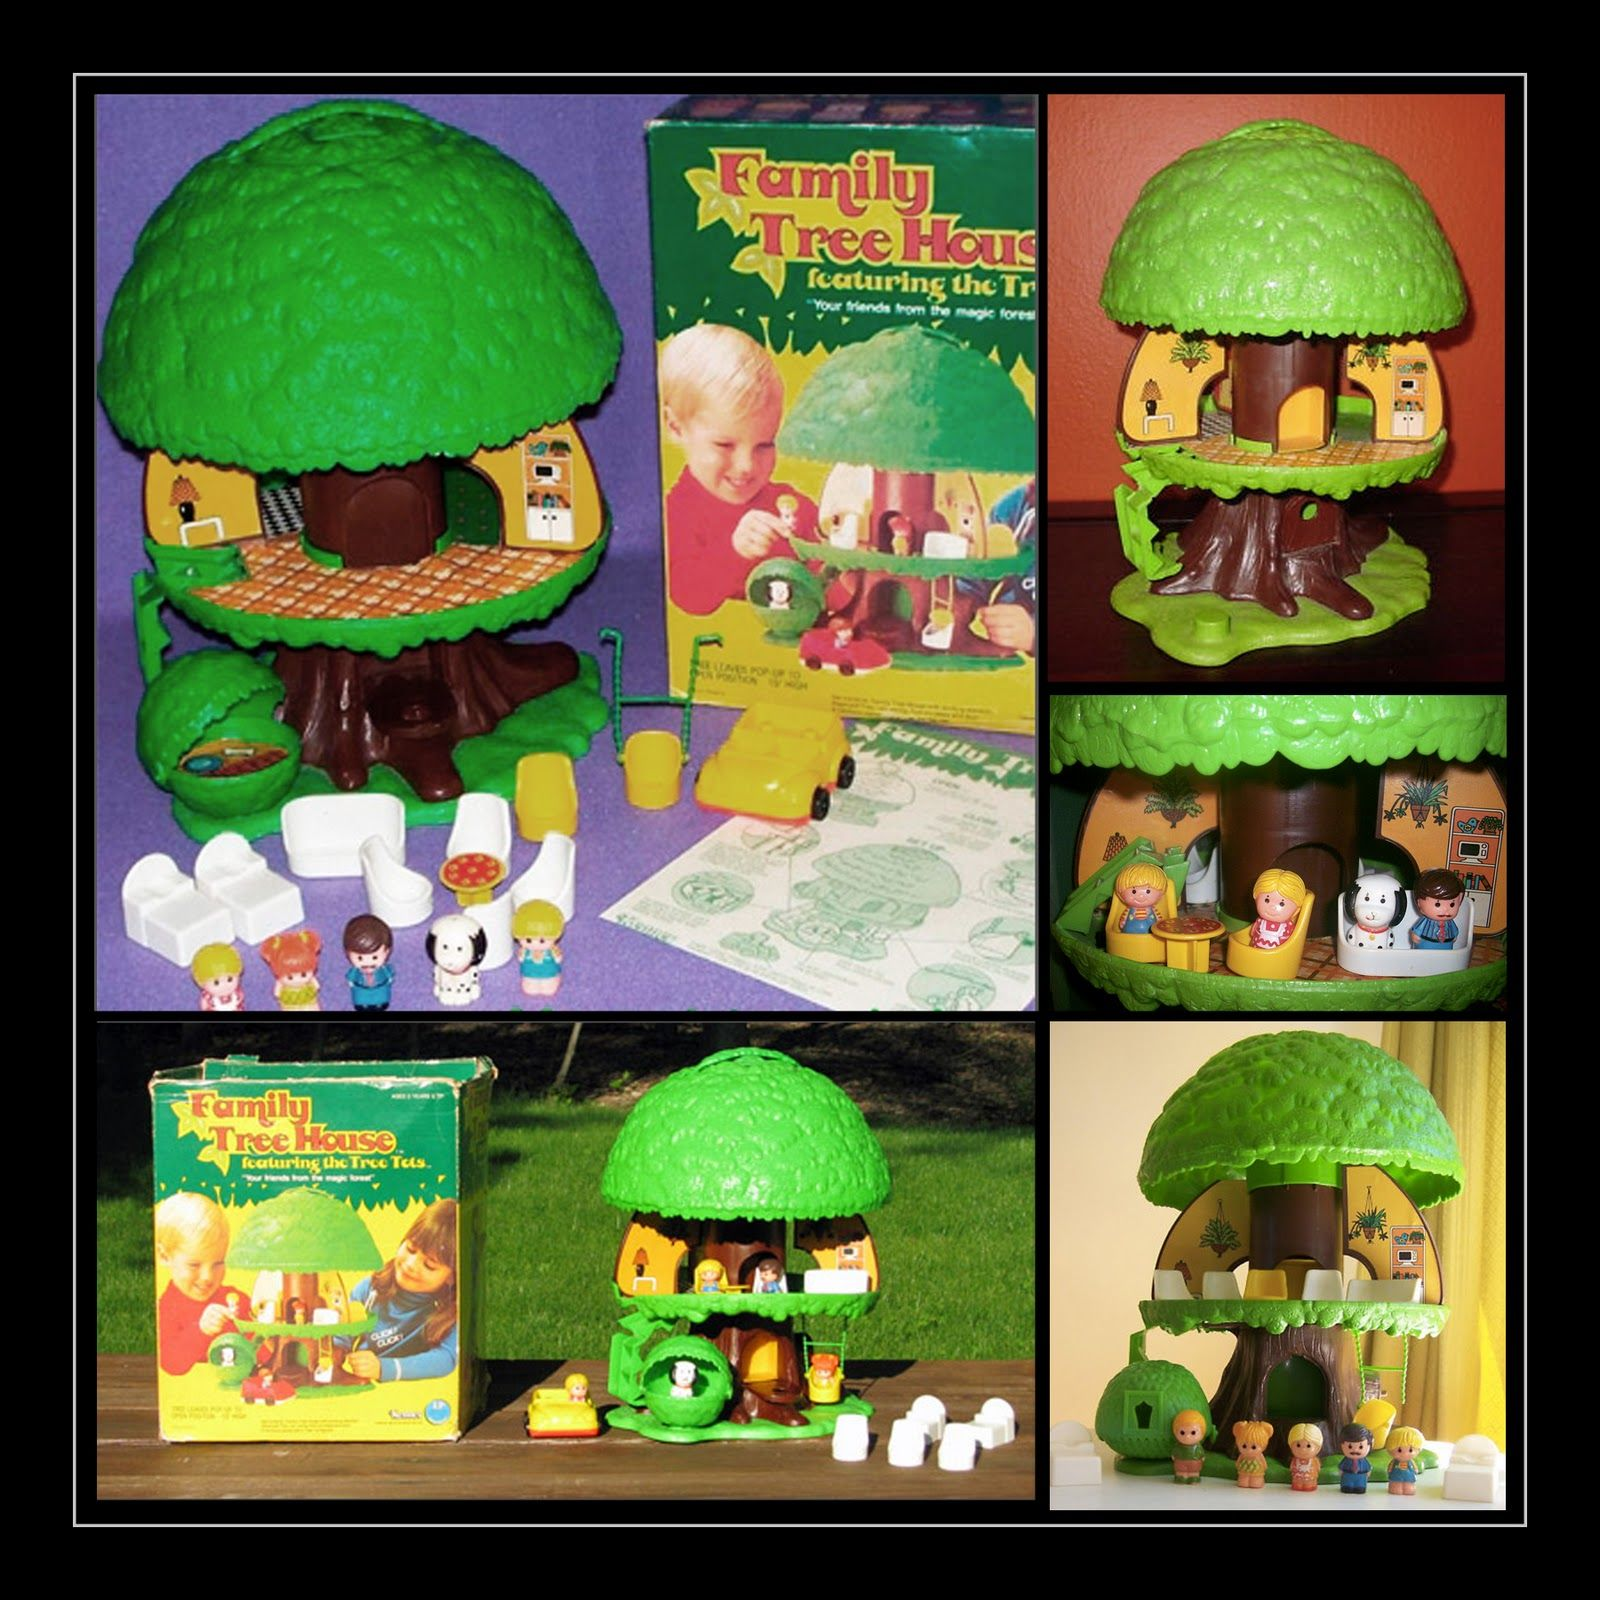 Delightful Kenner Treehouse Part - 5: Pop Up Toy Tree House | VINTAGE U002775 KENNER TREETOTS POP UP TREE HOUSE  PLAYSET